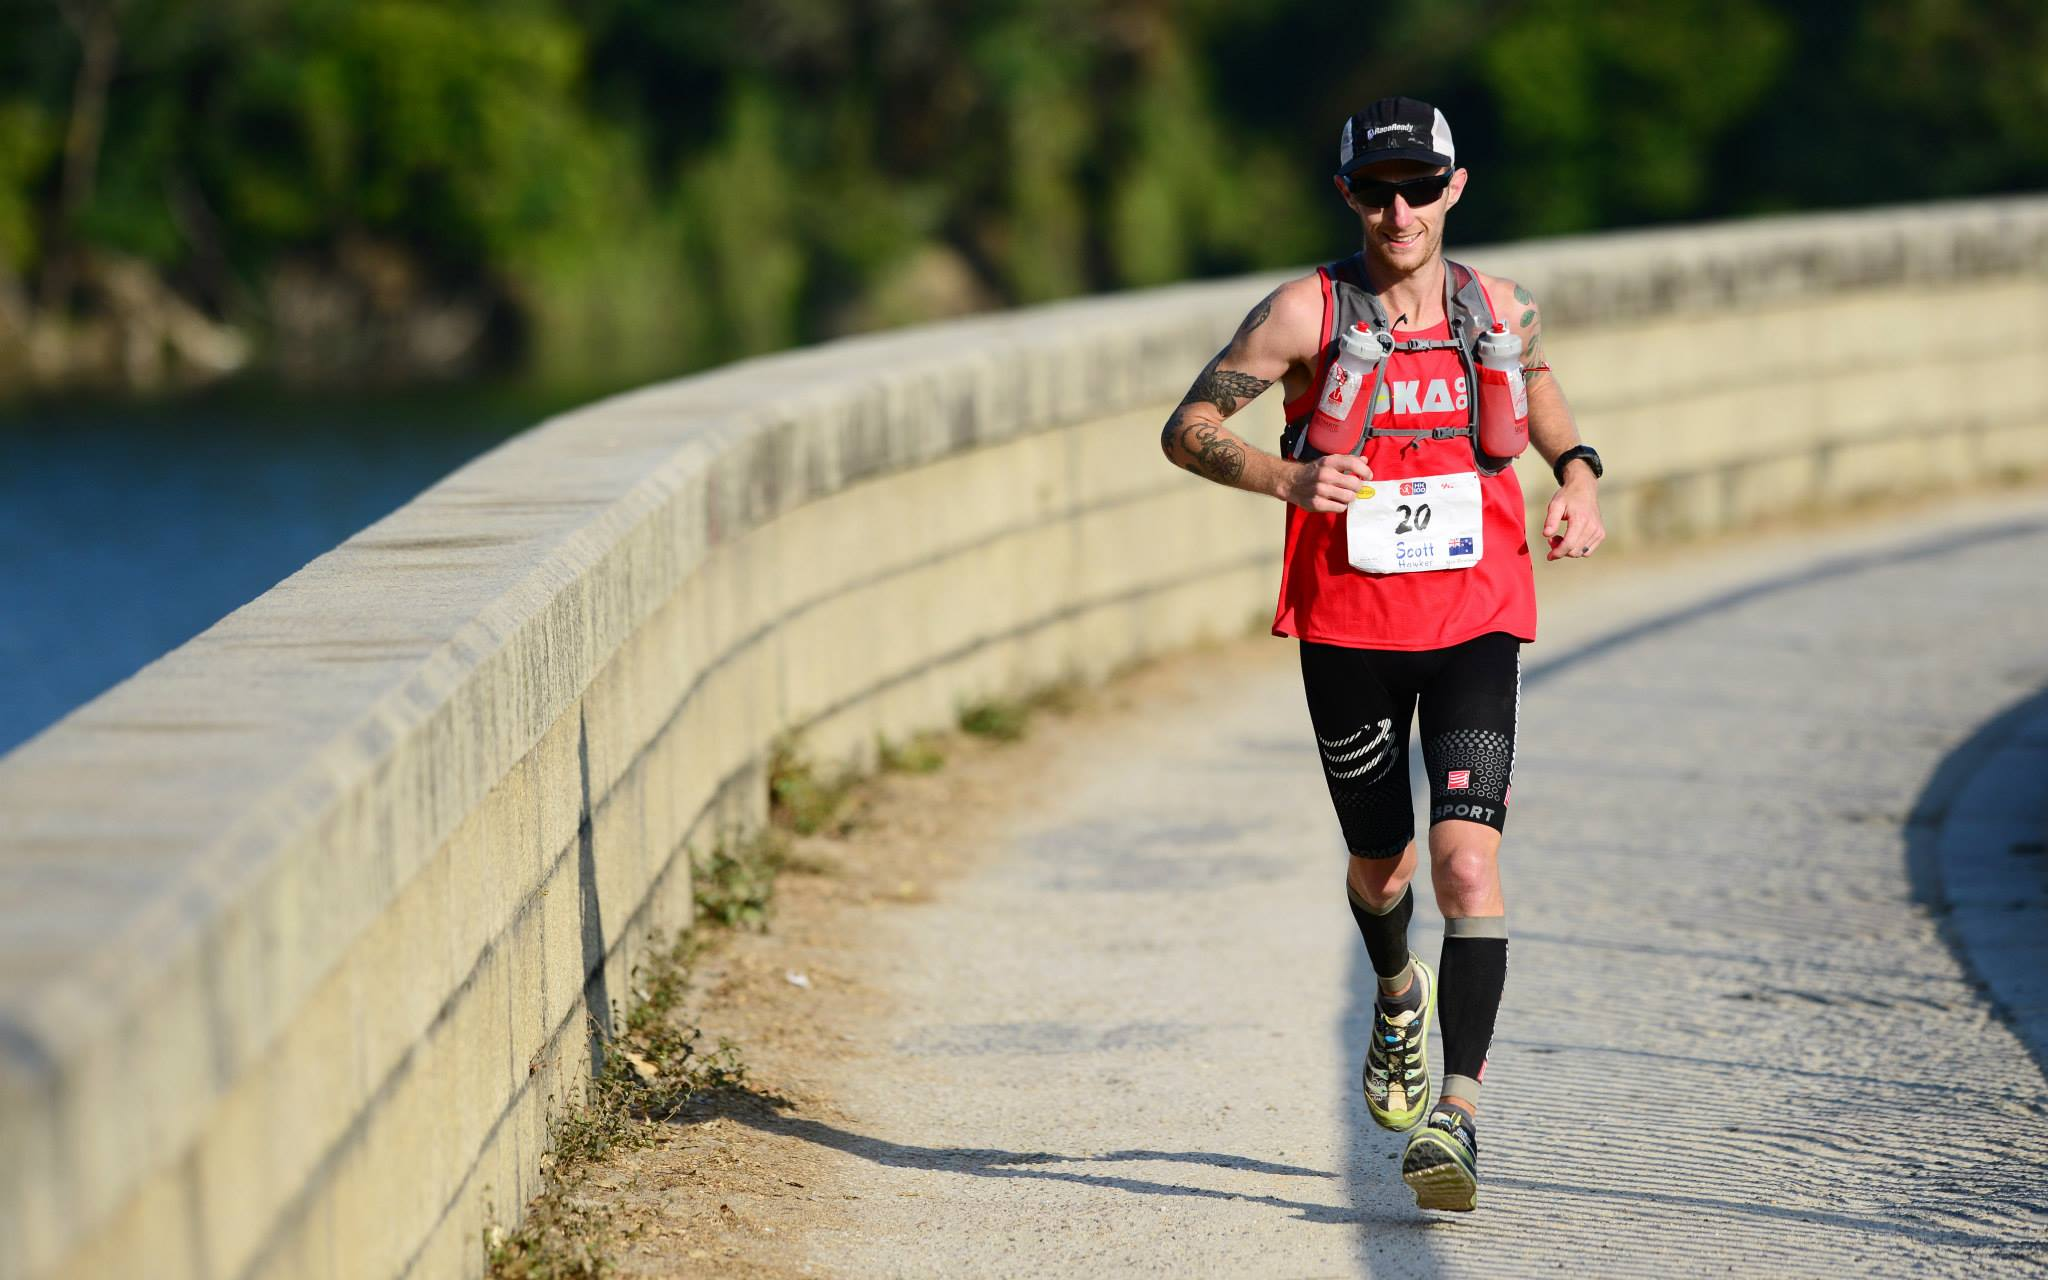 Scotty looking strong in the HK100